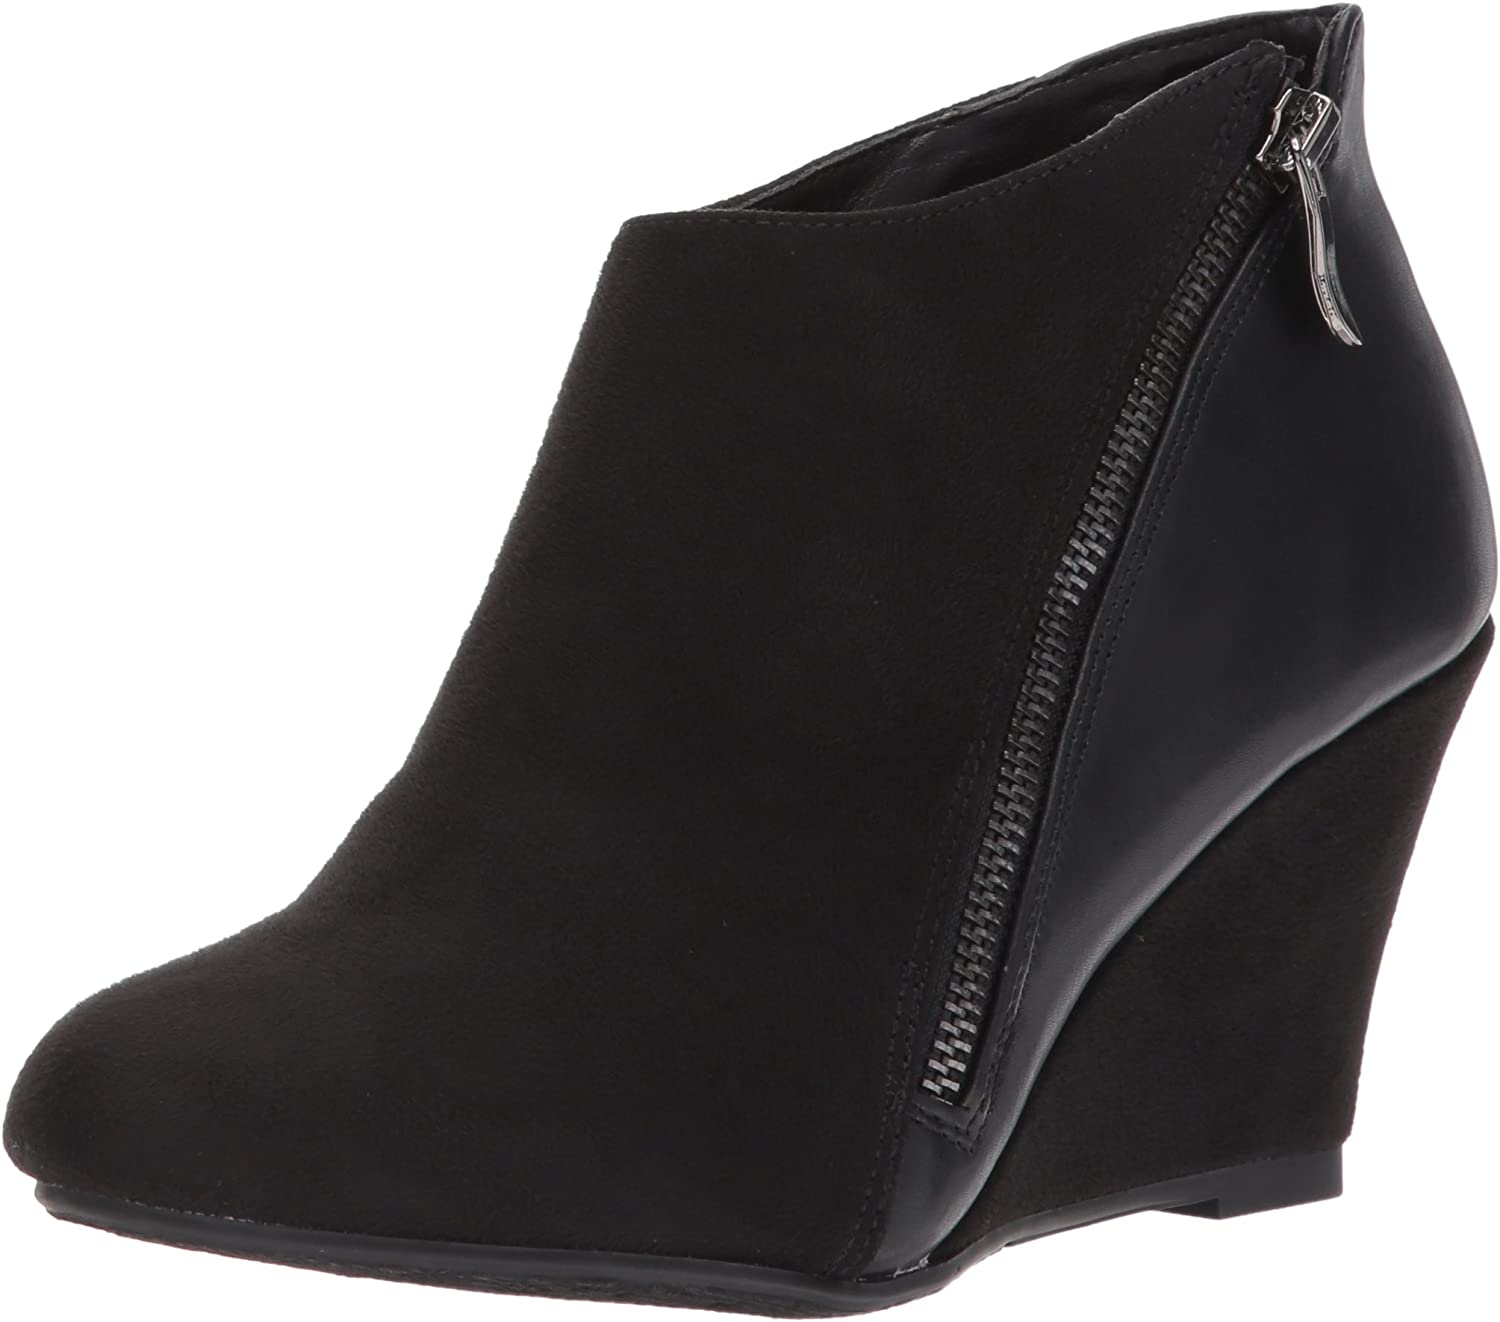 CL by Chinese Laundry Women's Viola Ankle Bootie